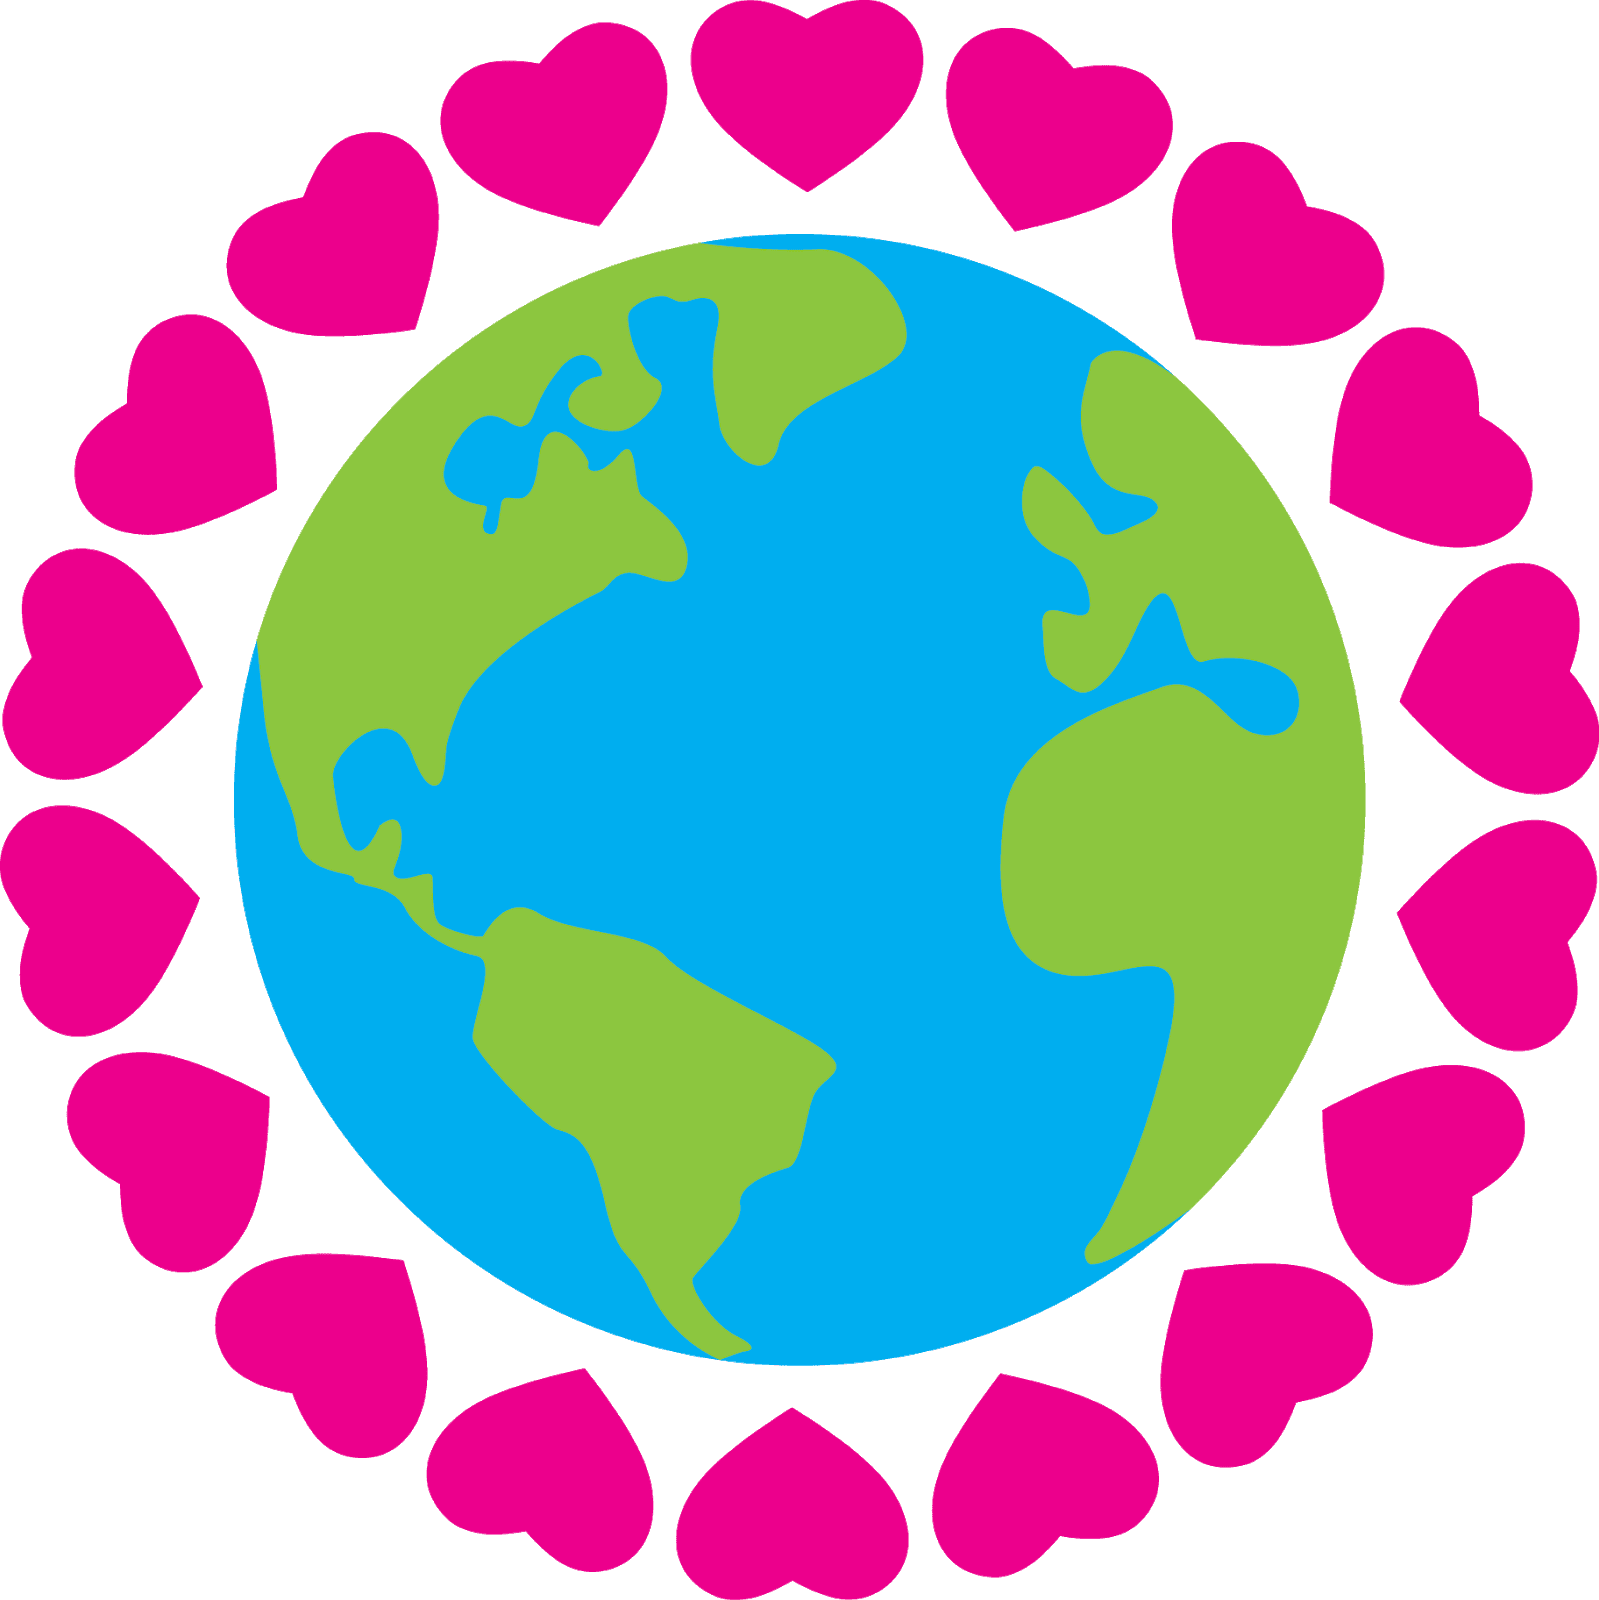 The Tree Book Review And Earth Day Clip Art